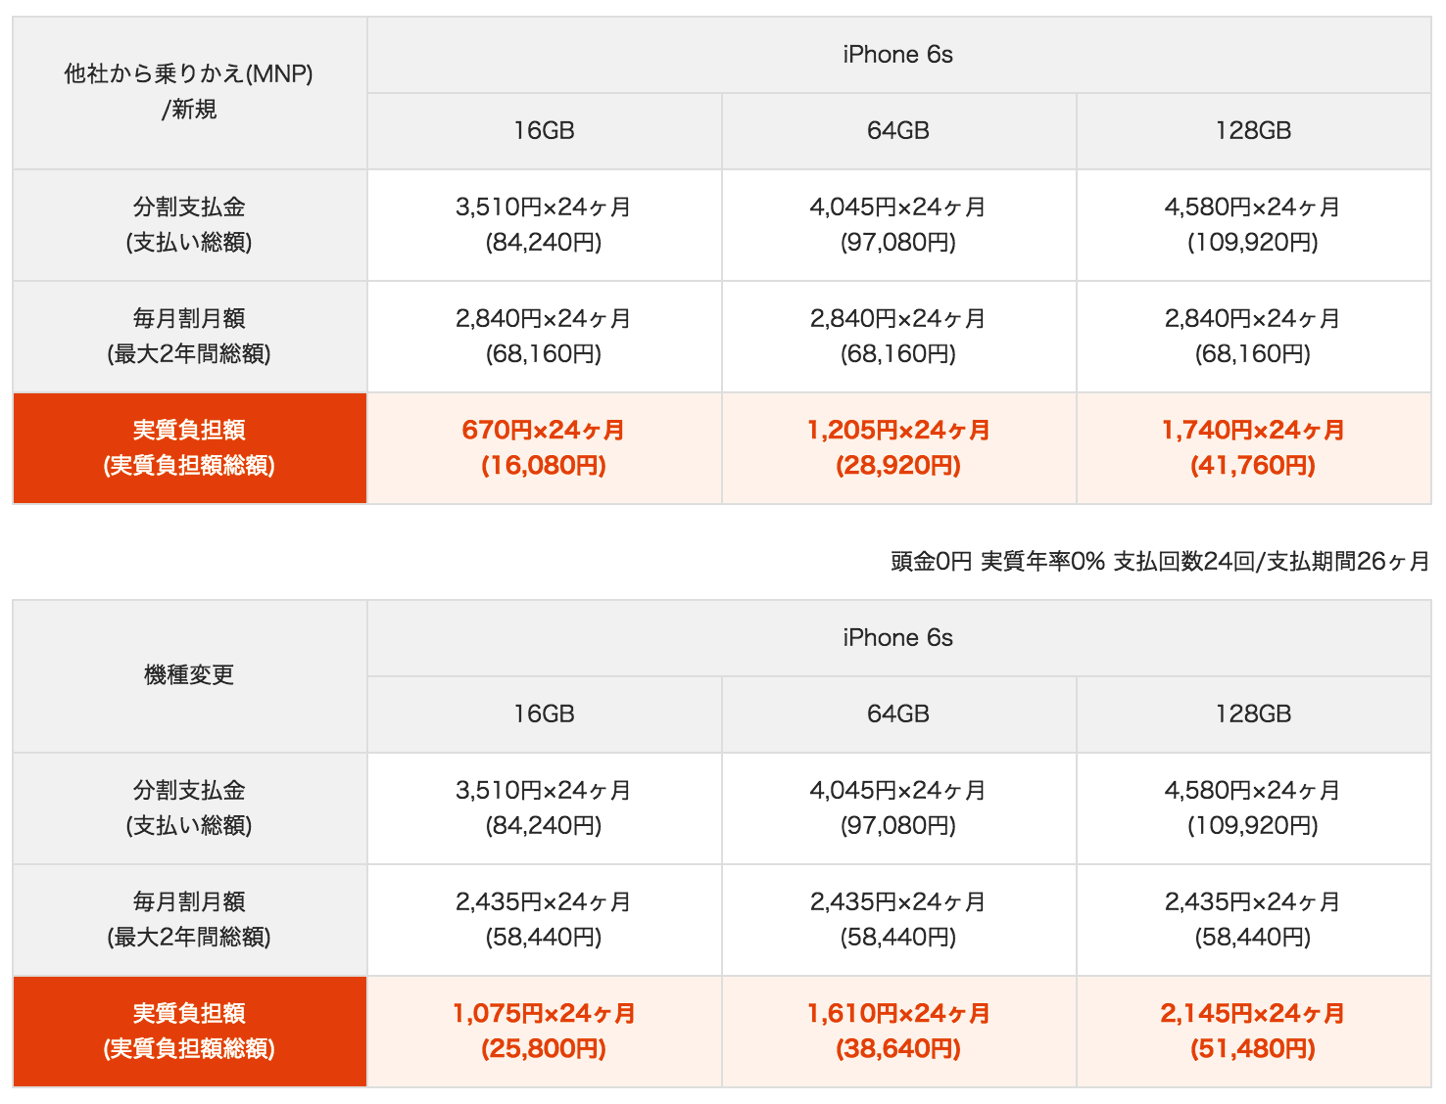 au-iphone6s-pricing-2.png